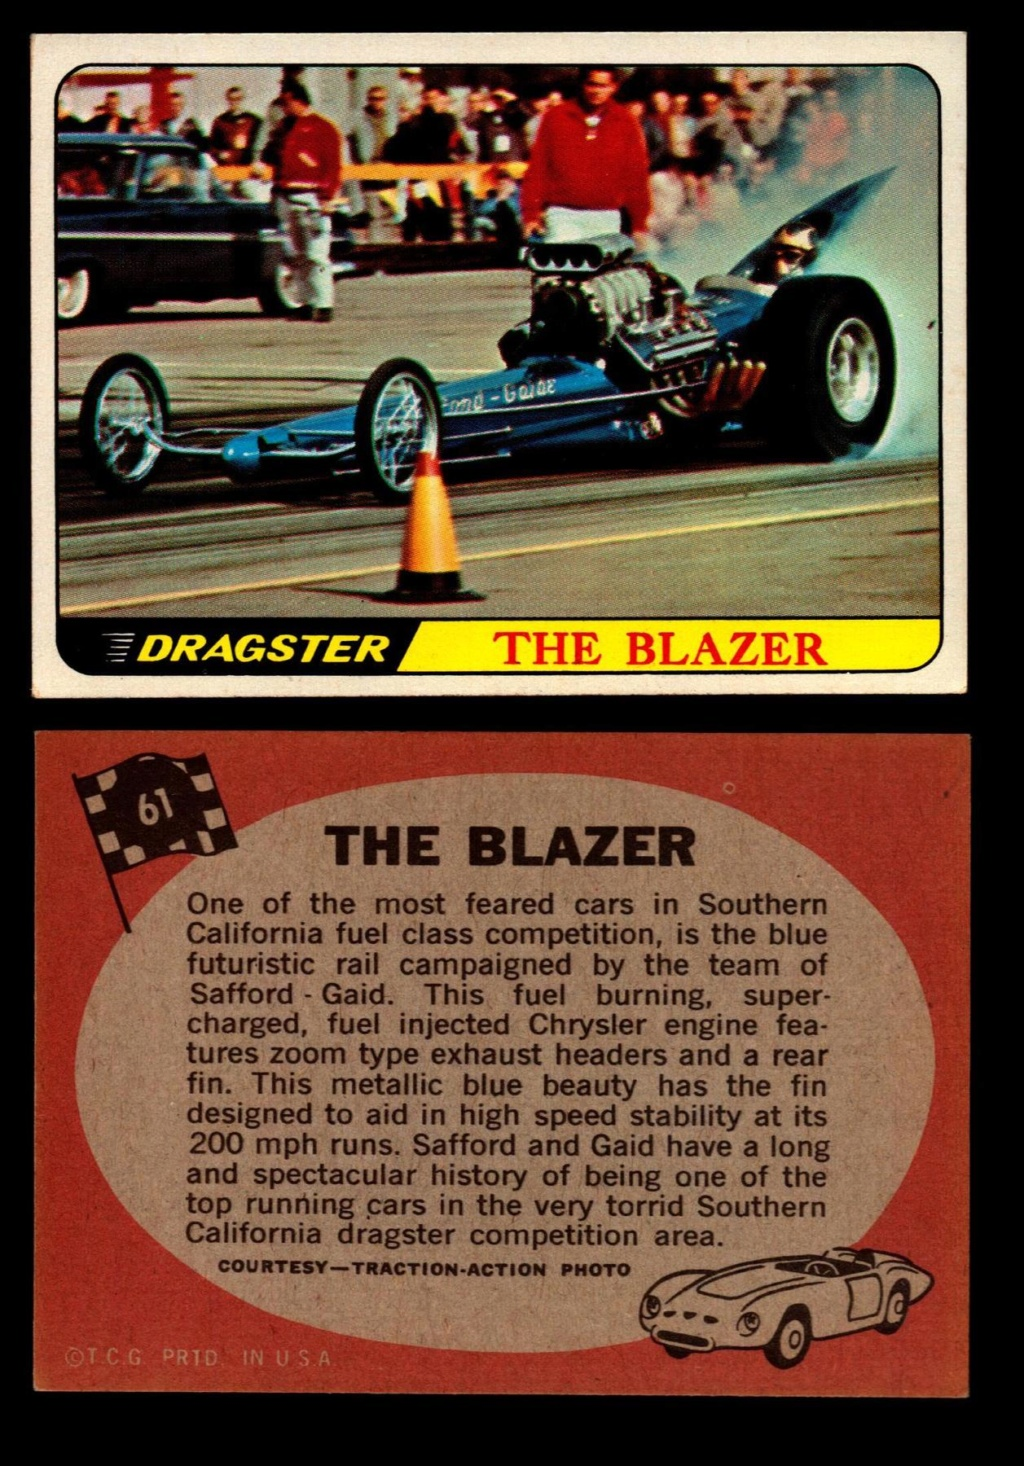 Hot Rods Topps - Vintage Trading Cards 1968 - Custom car - Dragster - Racer - Dream car - Barris Kustom City - Ed Roth Darrill Starbird, Gene Winfield, Bill Cuchenberry - Page 3 61_f2410